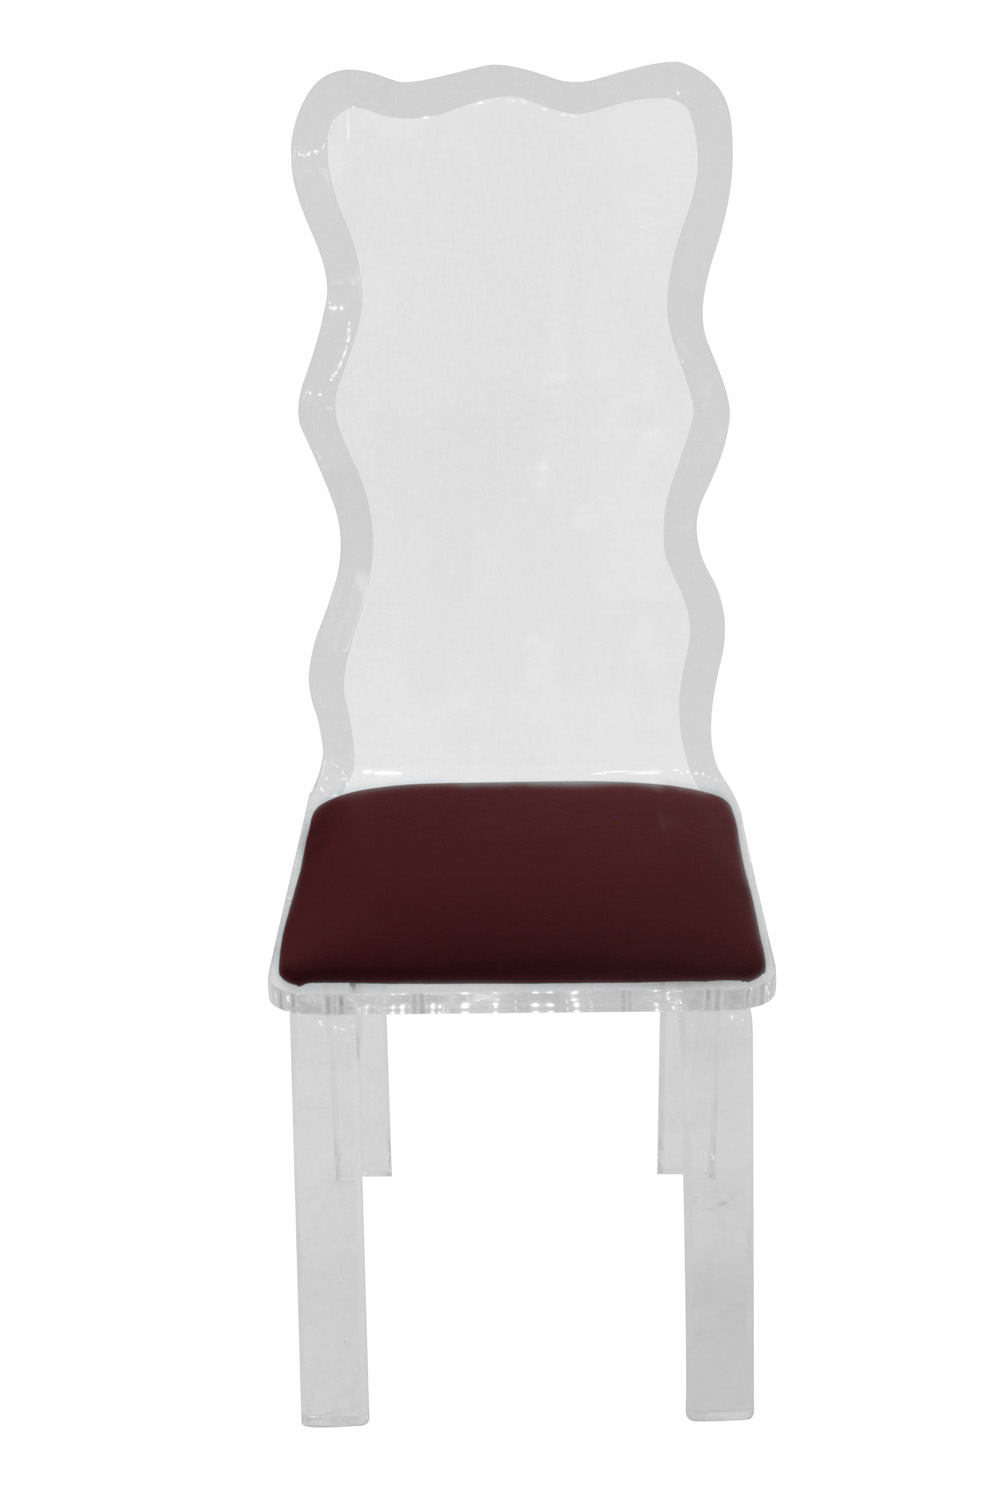 70s 85 lucite set 6 curvy backs diningchairs149 detail2 hires.jpg